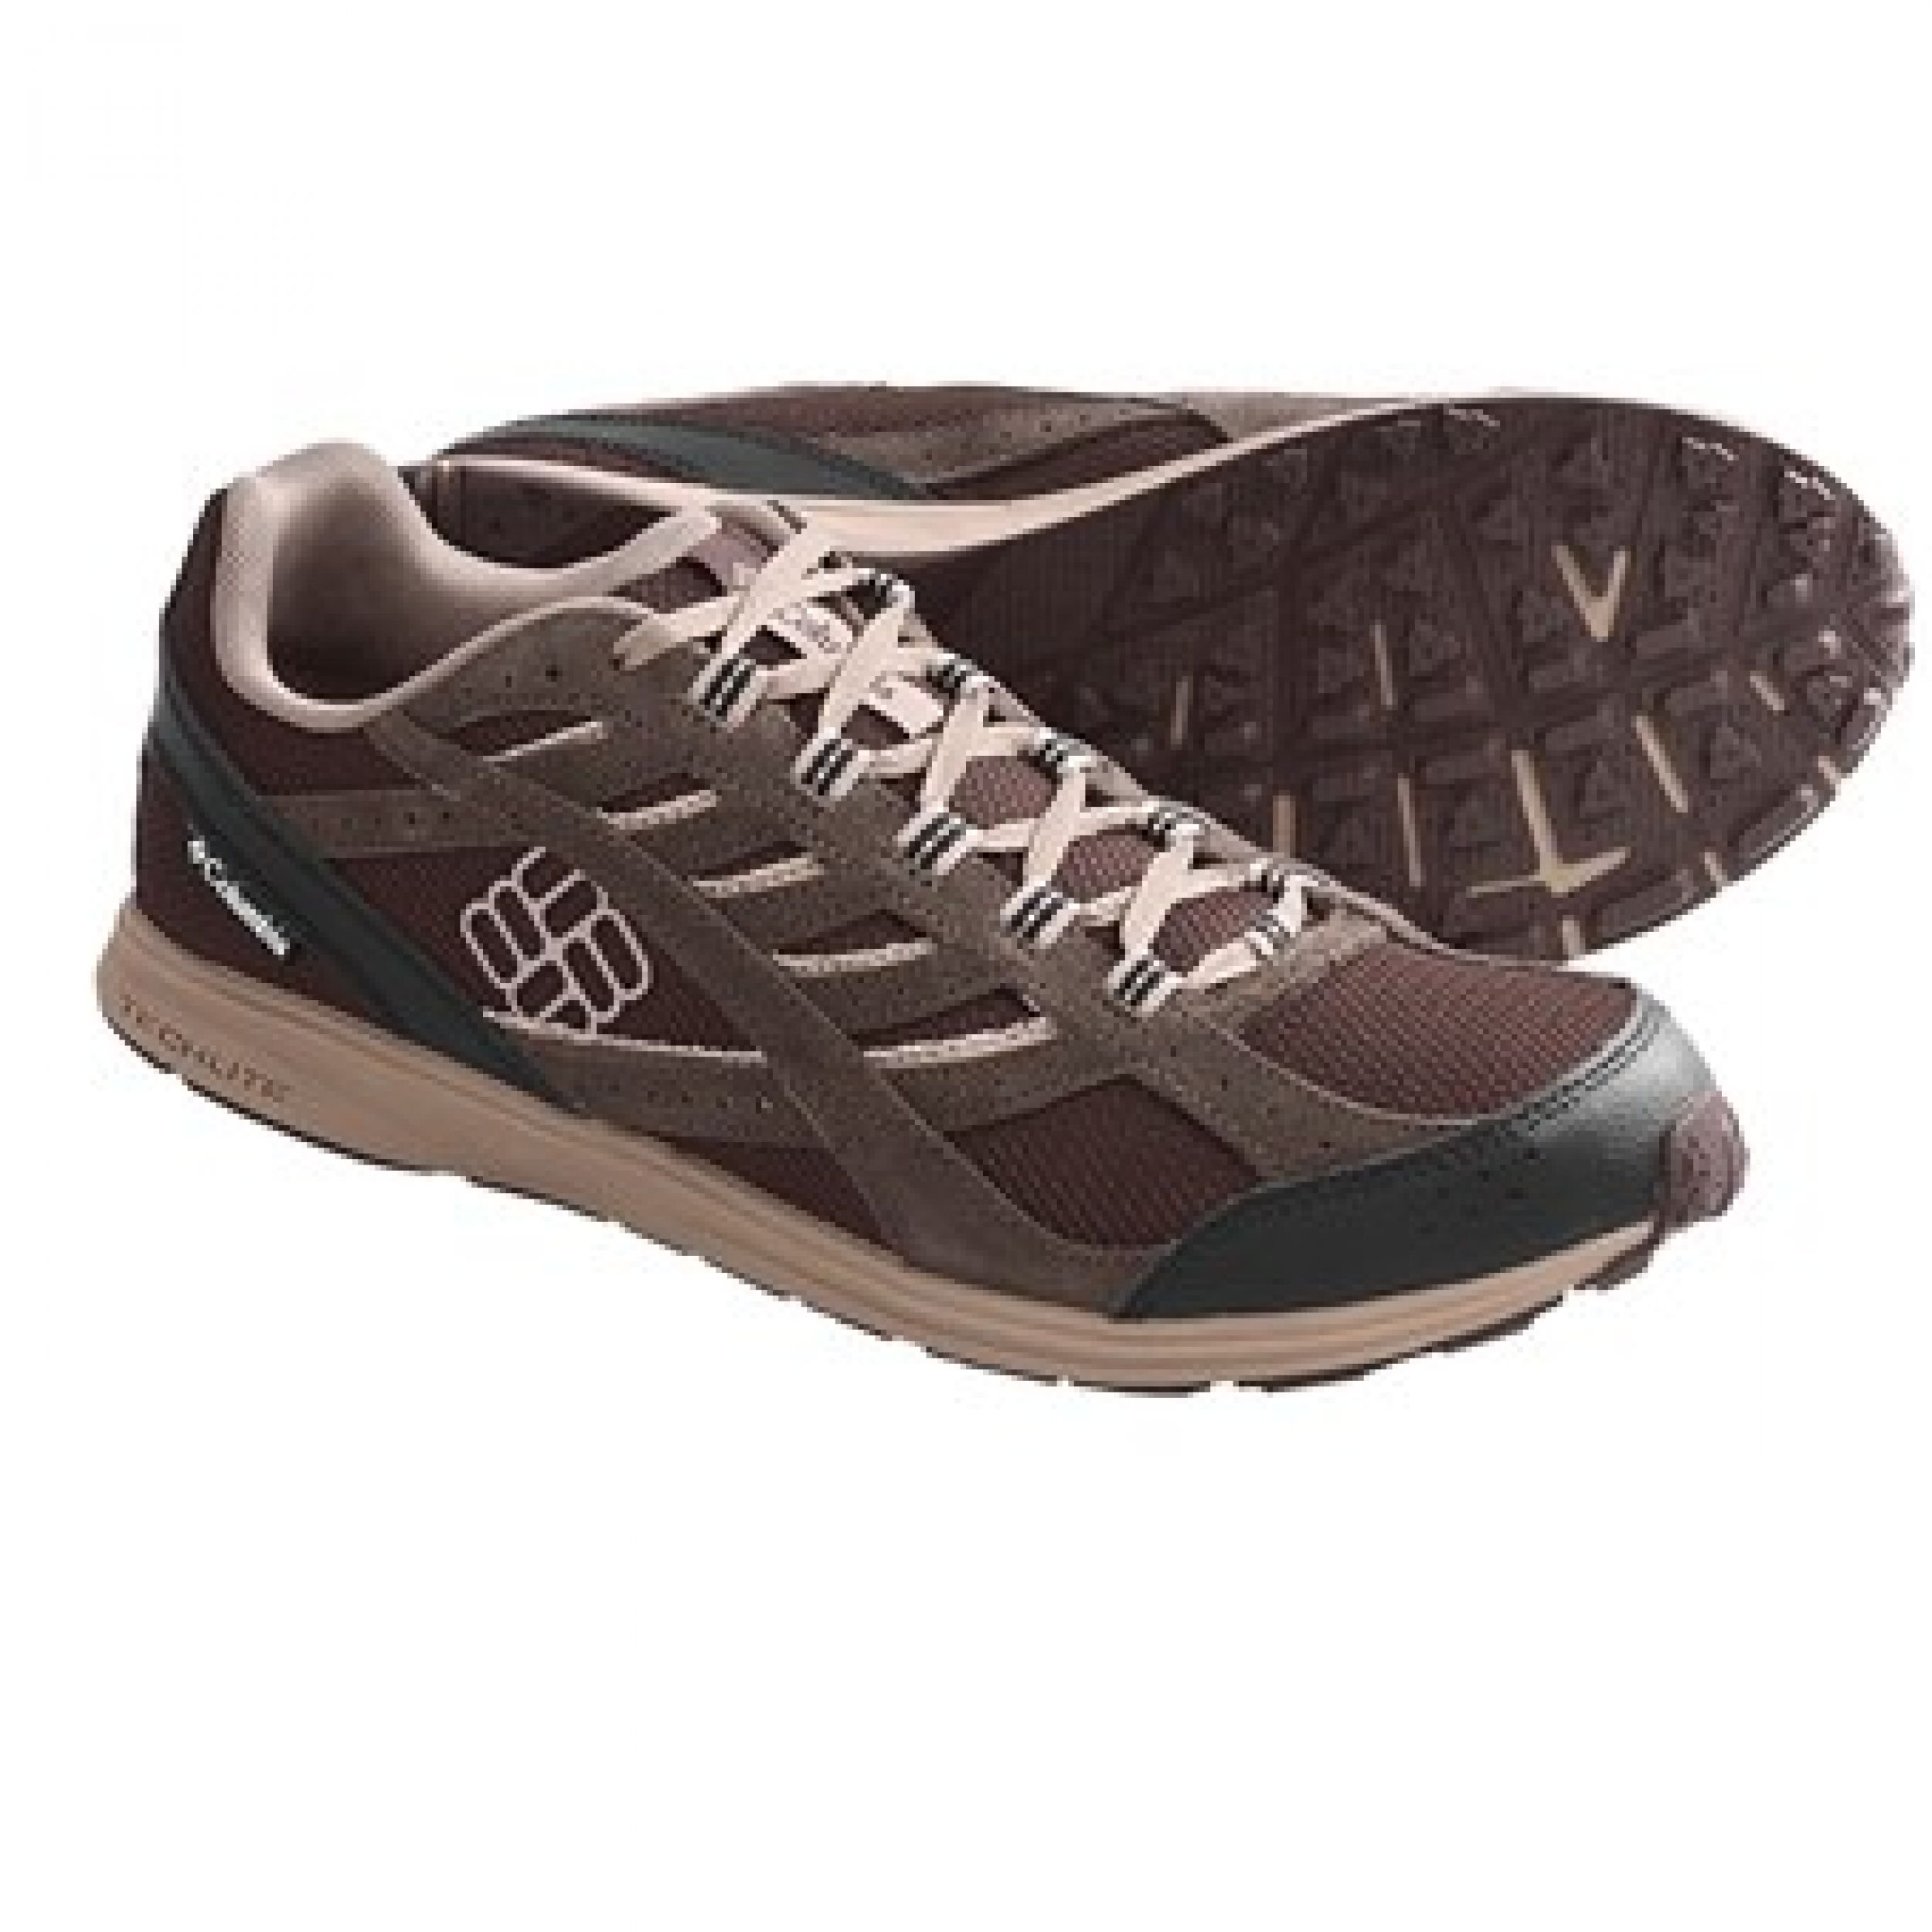 columbia-sportswear-fastpath-trail-shoes-for-men-in-hawk-verdantp6253u_01340.2.jpg